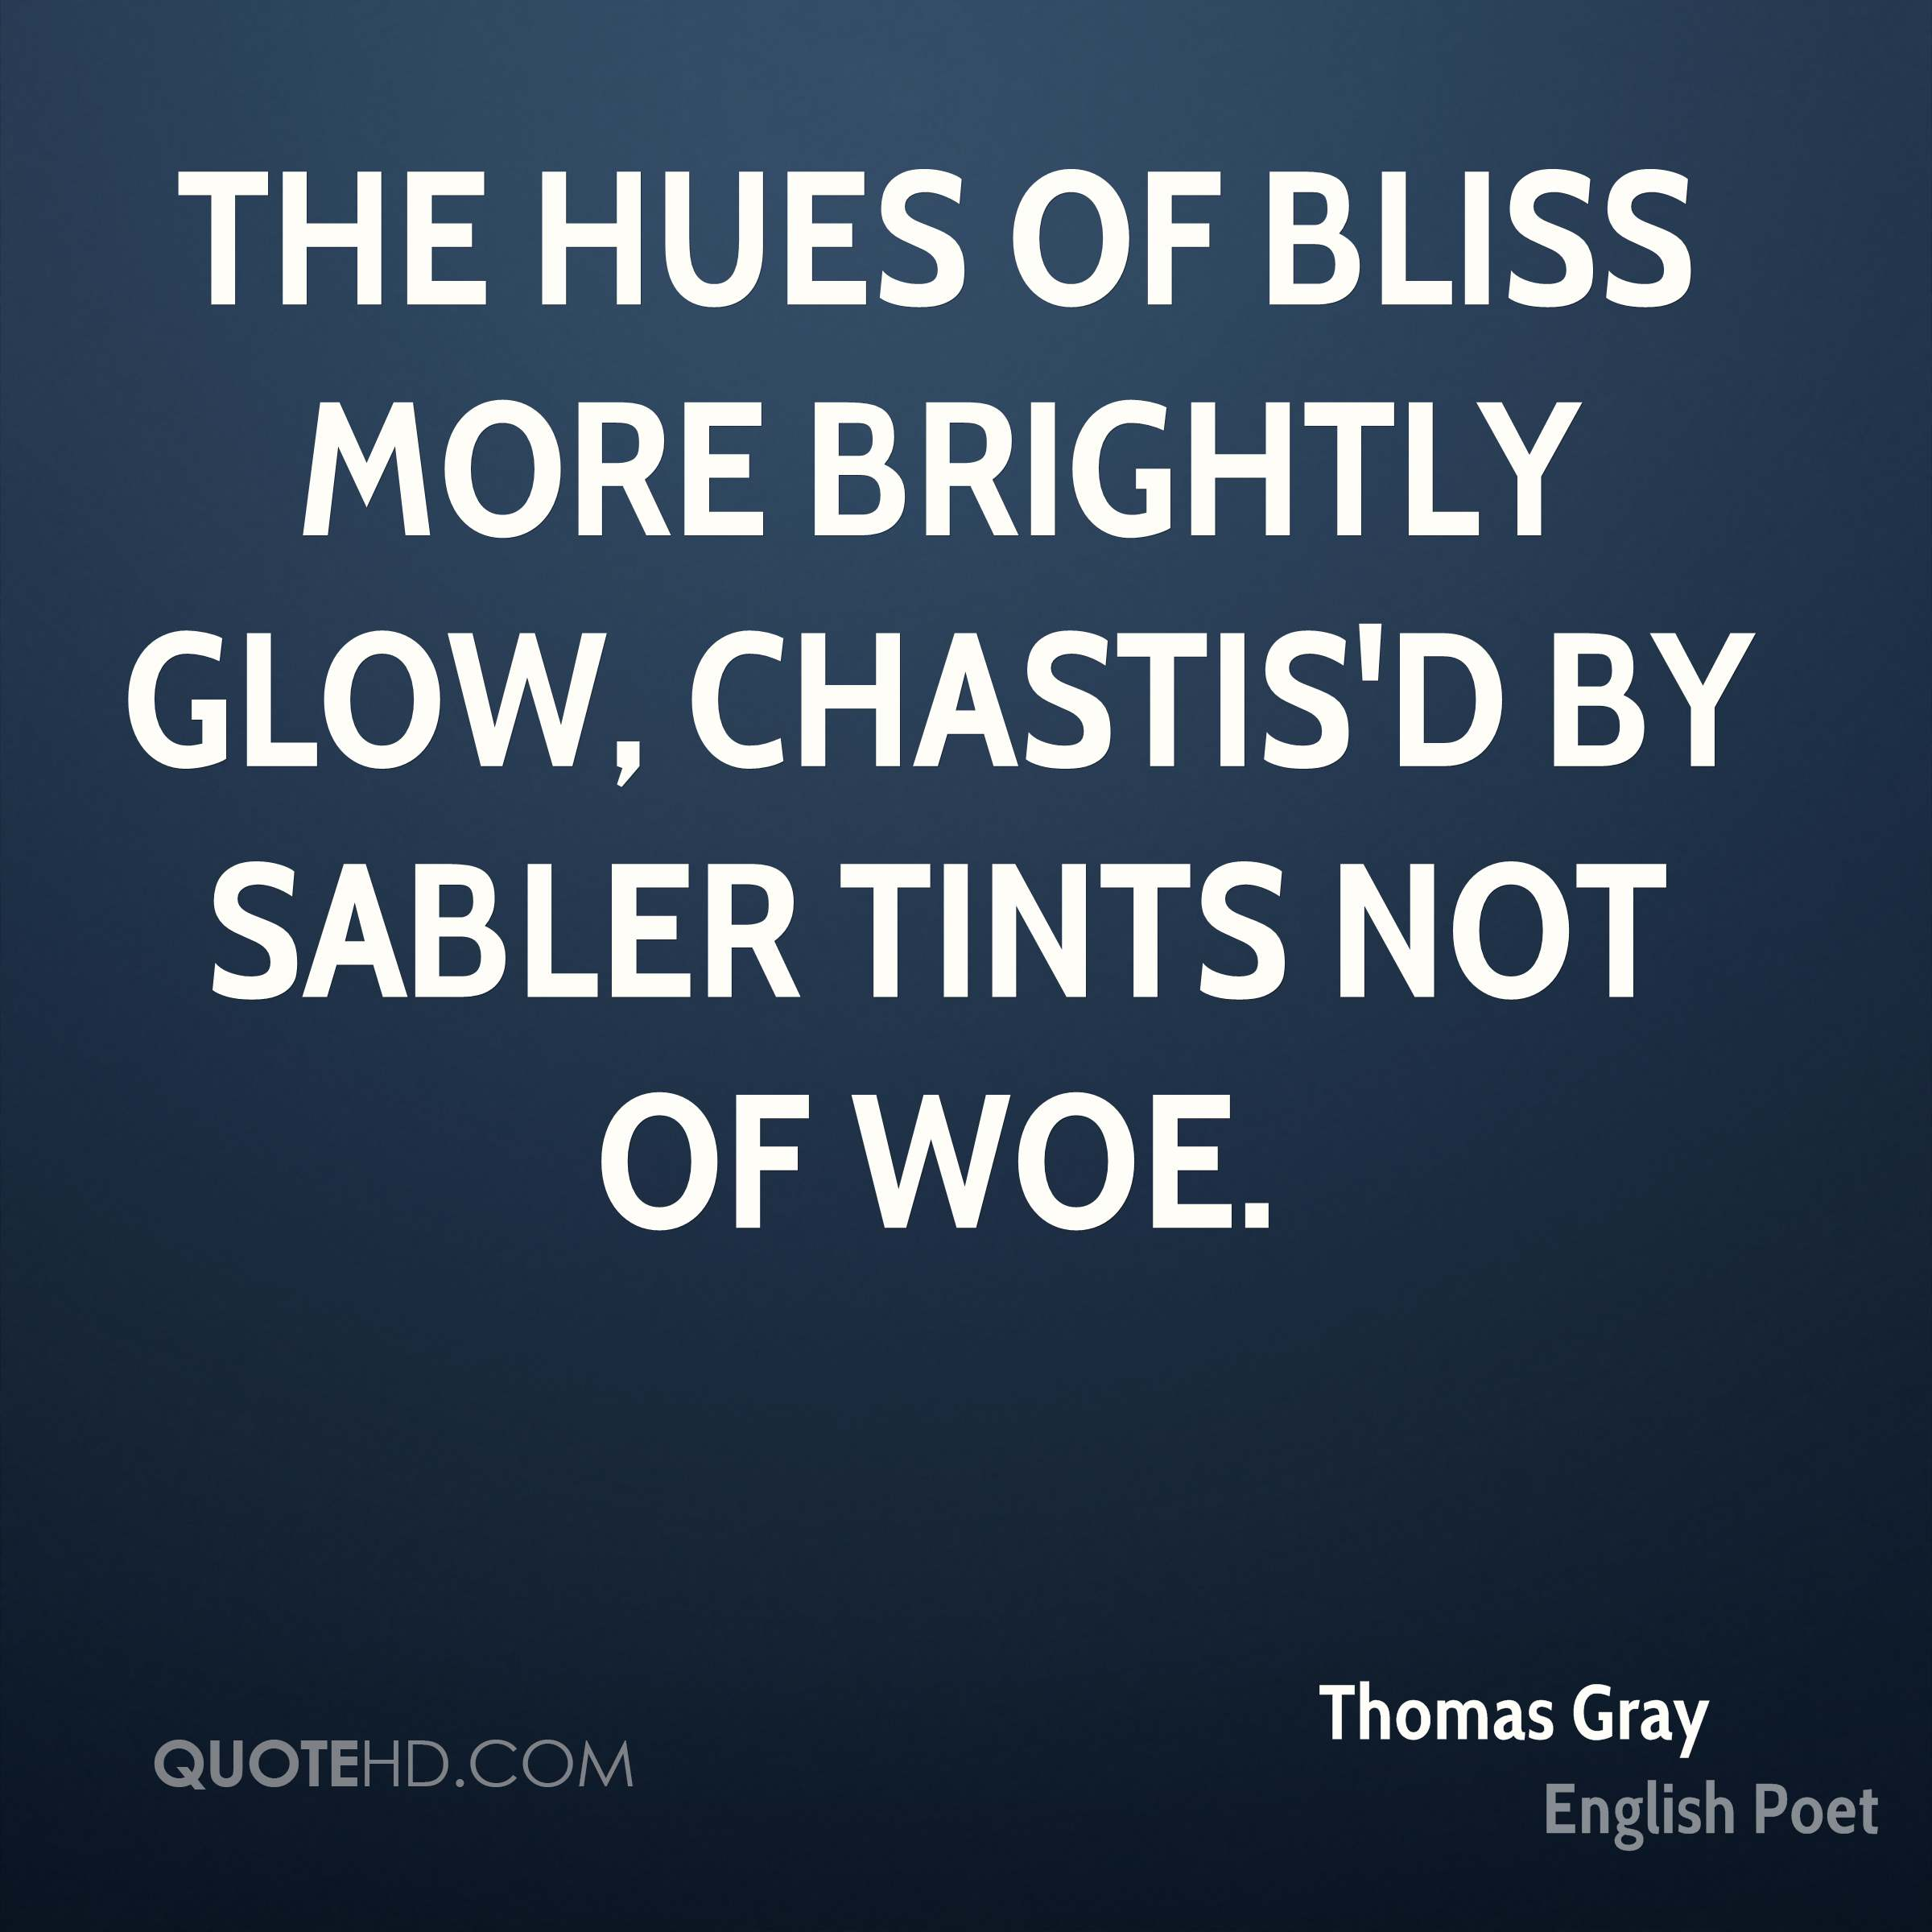 The hues of bliss more brightly glow, Chastis'd by sabler tints not of woe.